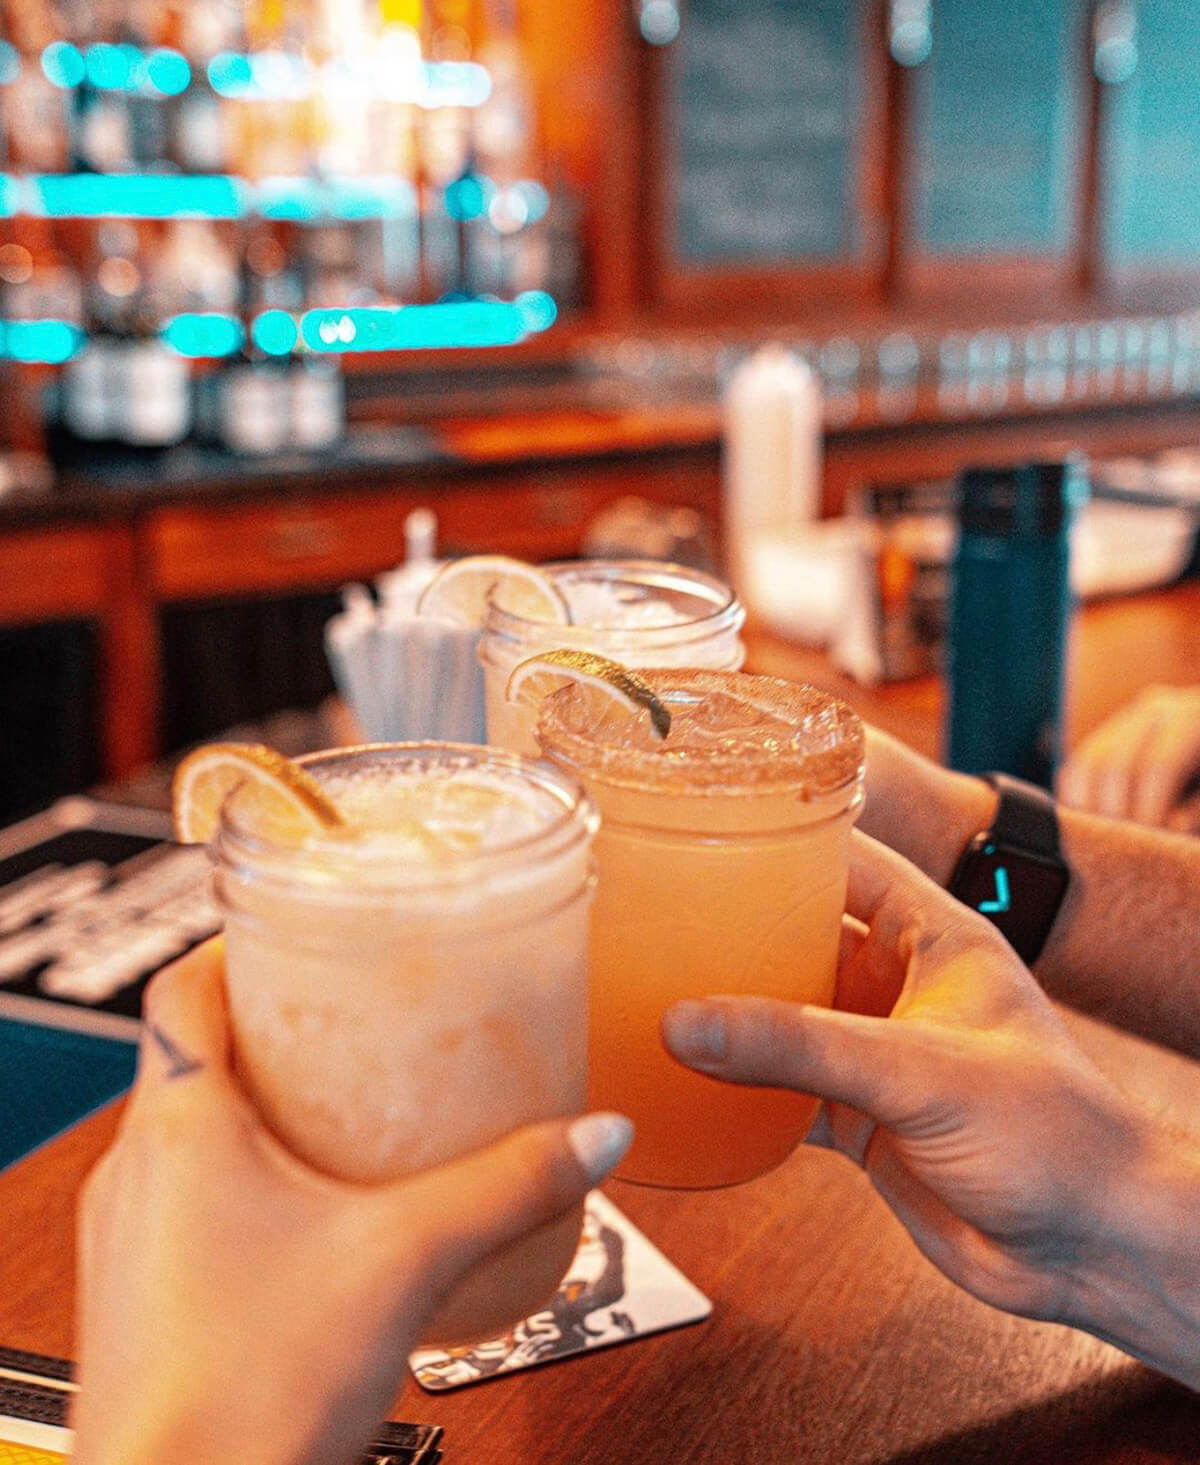 Hands come together with three margaritas in a toast.